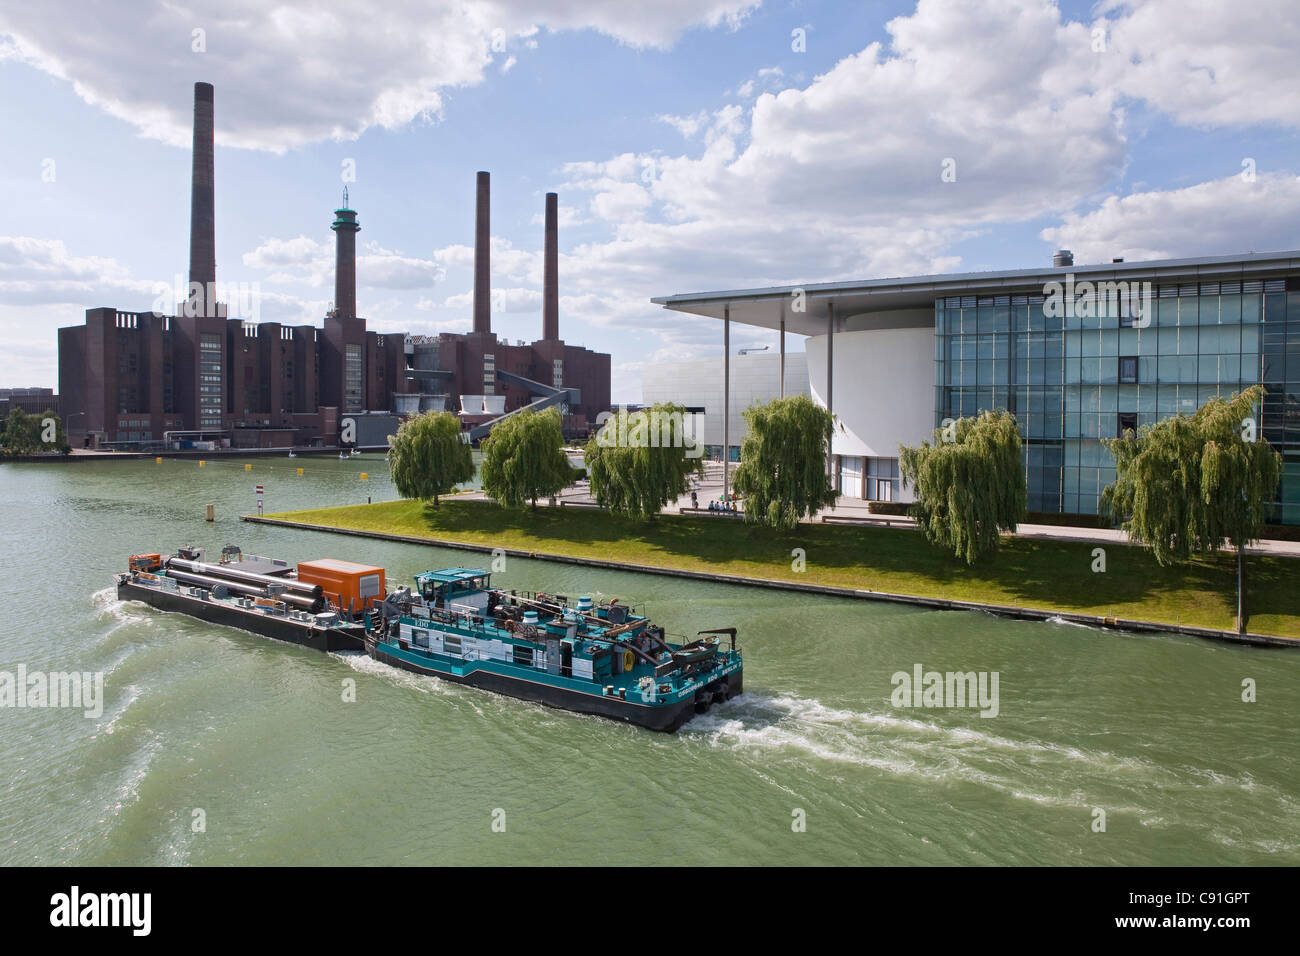 Ship on Mittelland Canal, VW Autostadt and Volkswagen Factory, Wolfsburg, Lower Saxony, Germany - Stock Image